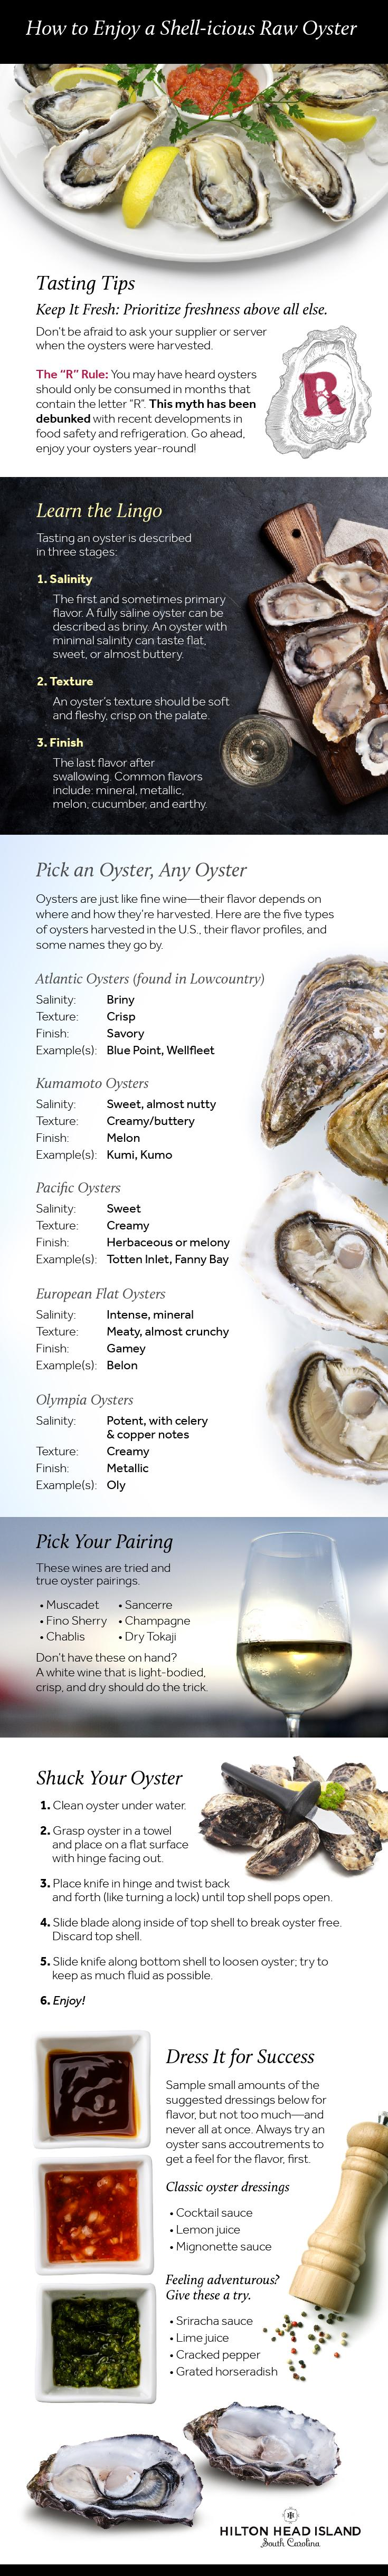 How to Enjoy a Shell-icious Raw Oyster